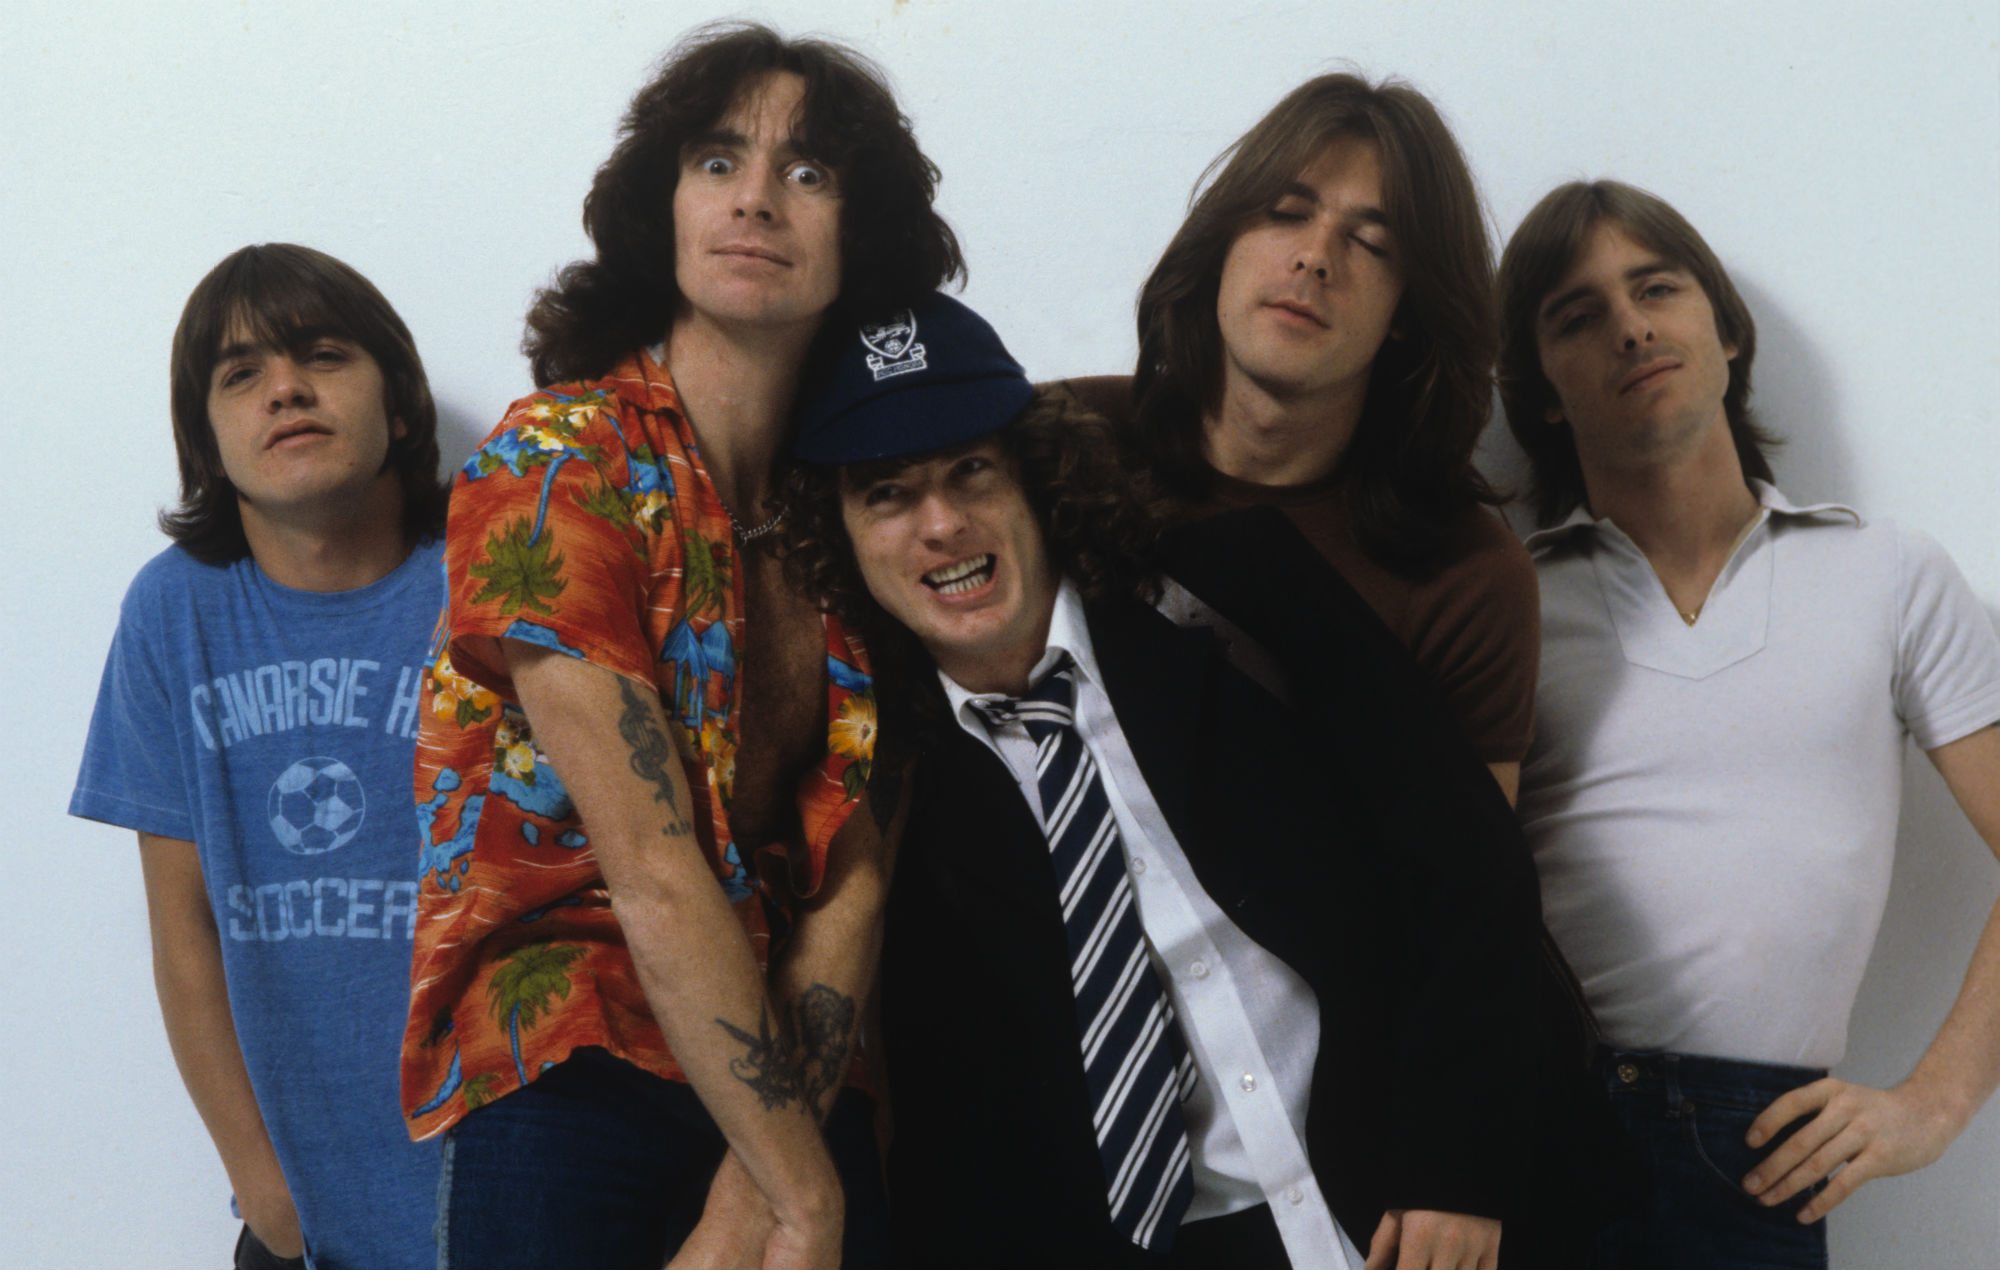 AC/DC return to social media to mark 40th anniversary of 'Highway To Hell'